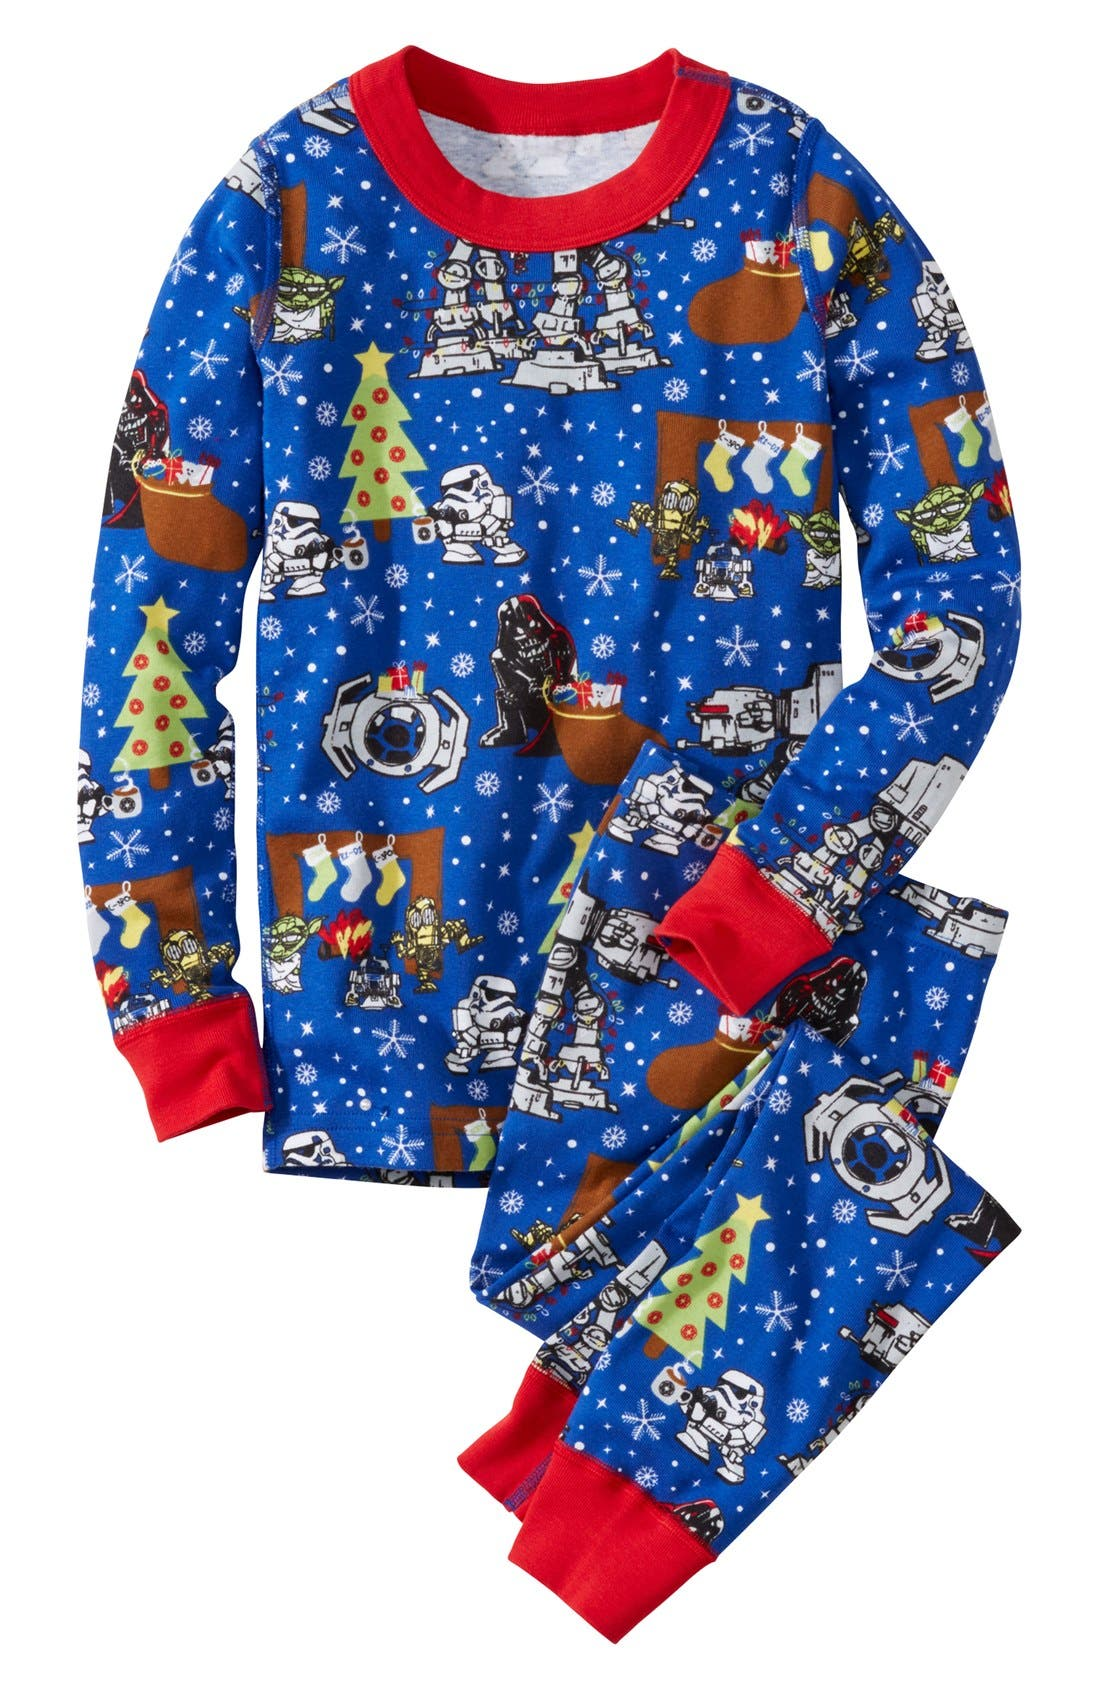 Alternate Image 1 Selected - Hanna Andersson Star Wars™ Holiday Organic Cotton Fitted Two-Piece Pajamas (Toddler Boys, Little Boys & Big Boys)